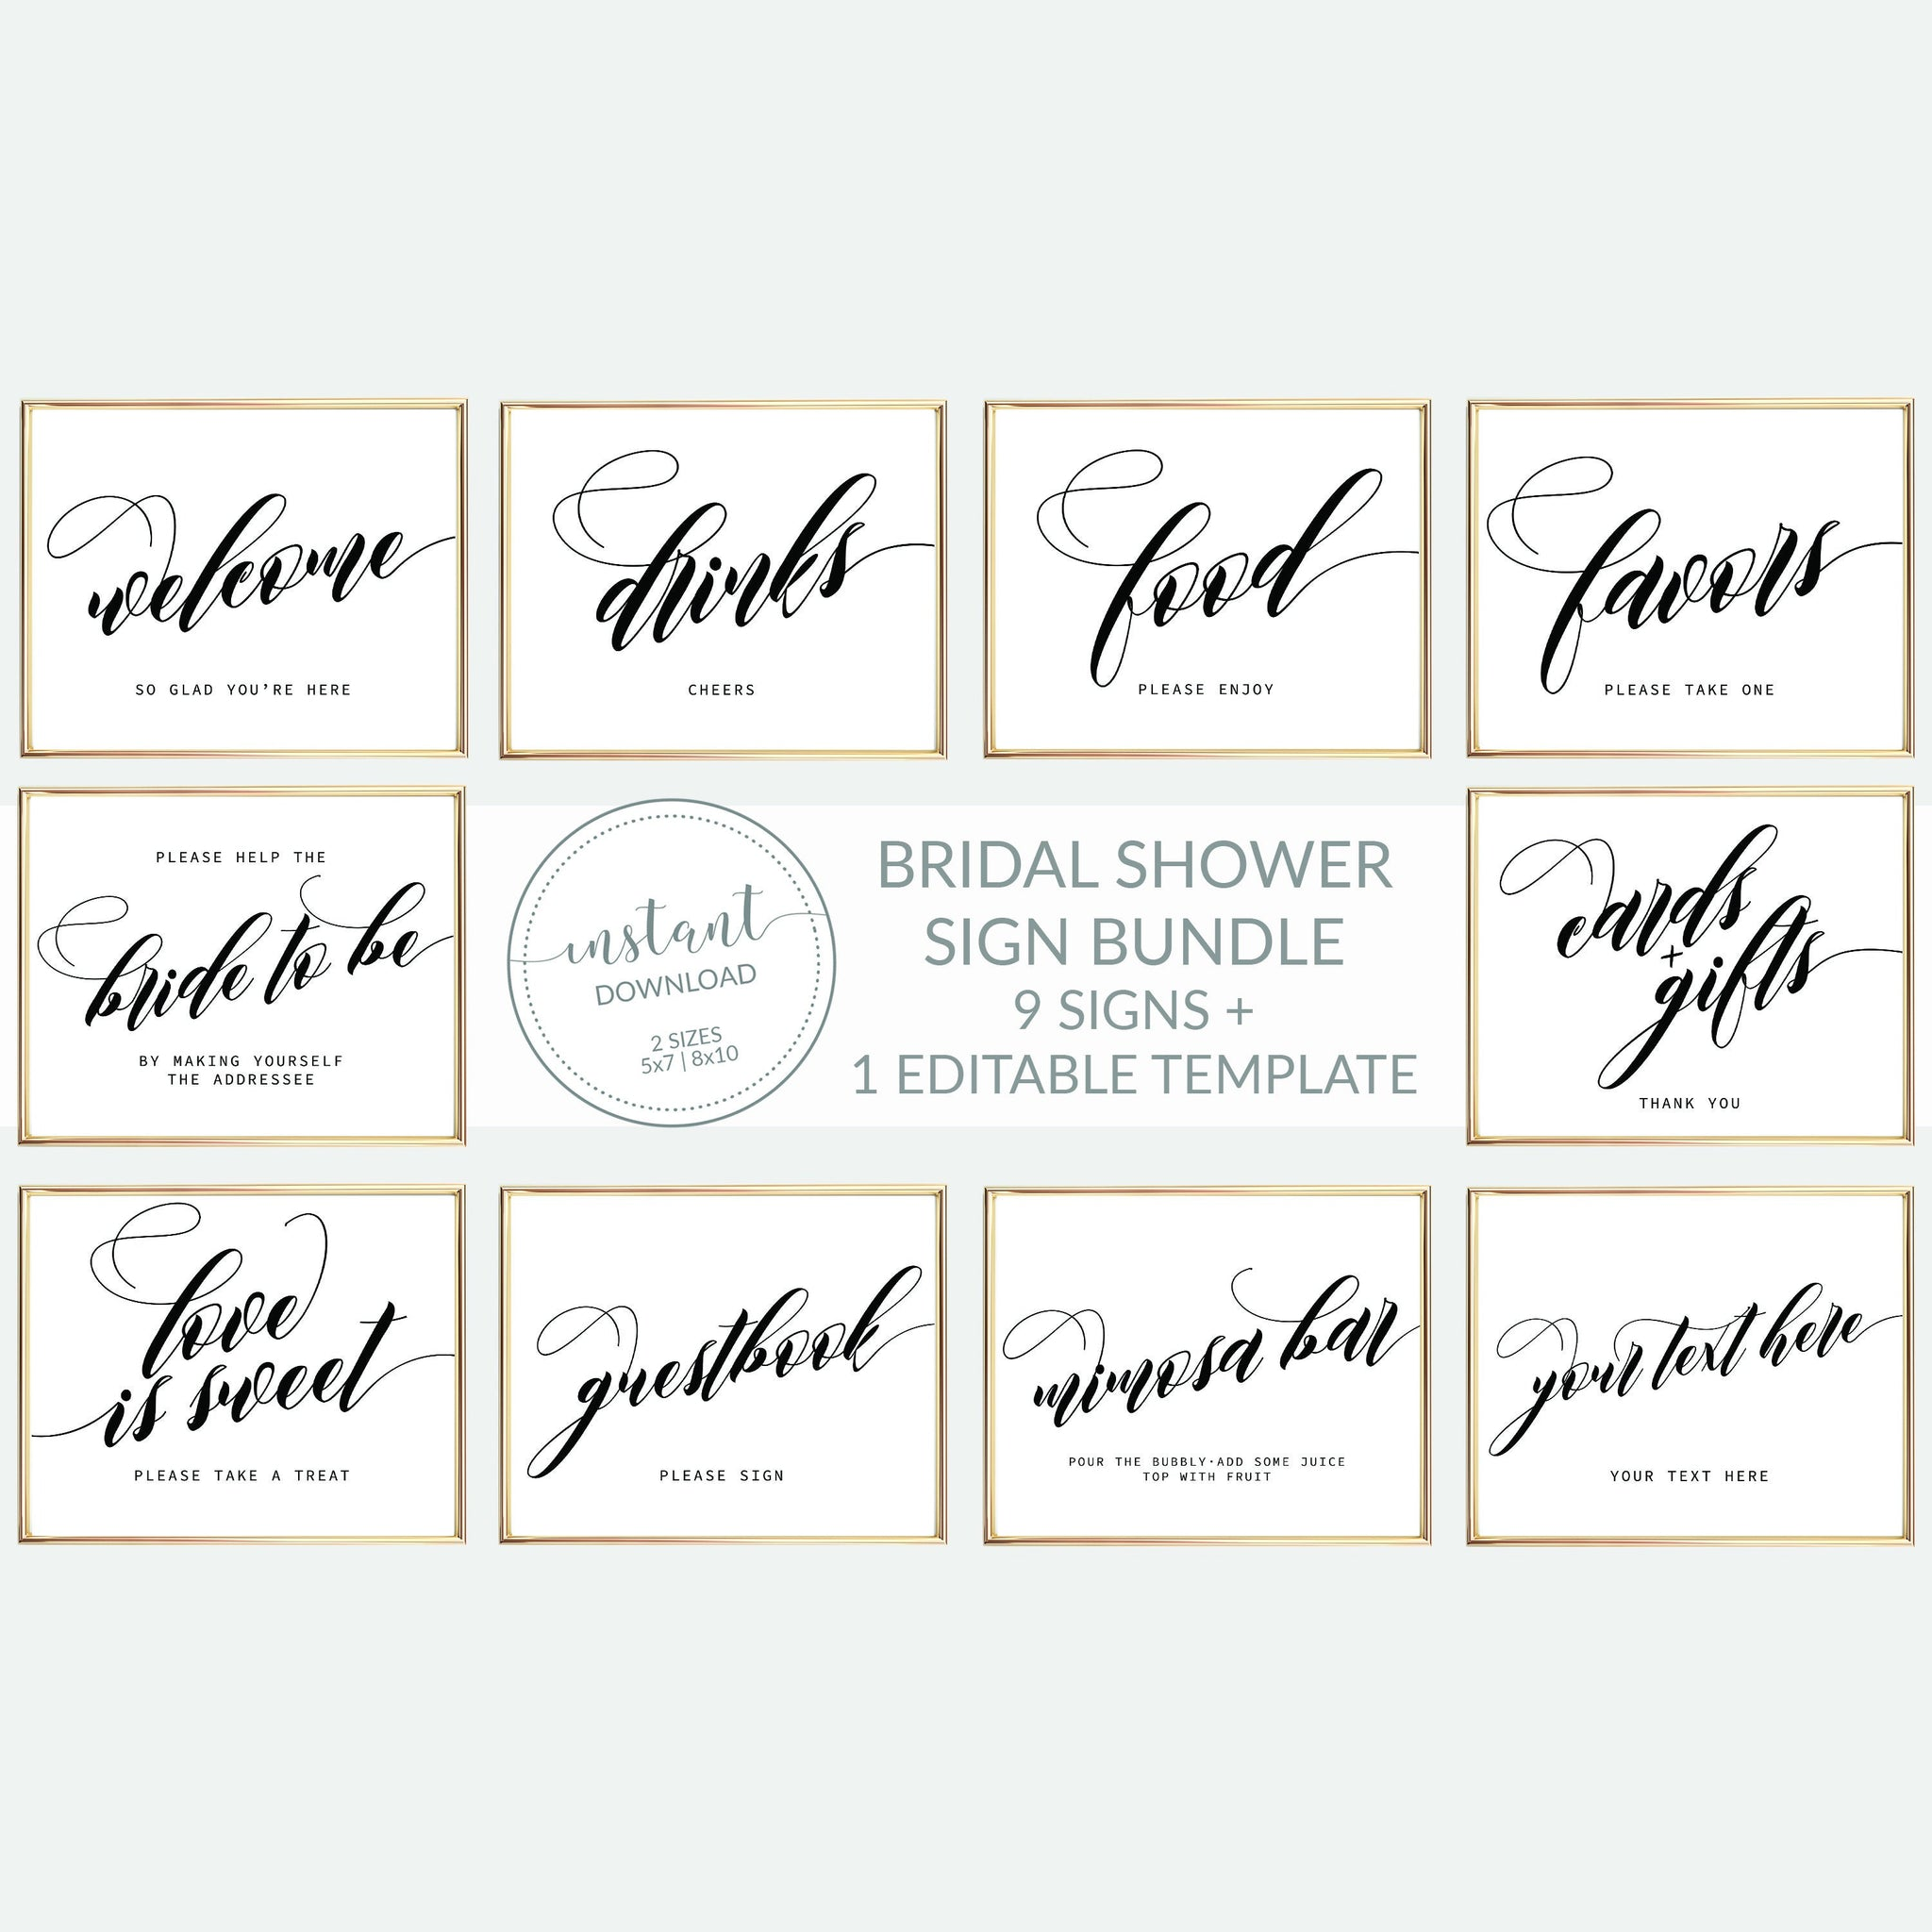 Printable Bridal Shower Signs Set, Minimalist Wedding Shower Sign Template, INSTANT DOWNLOAD, Black and White Decorations Supplies - SFB100 - @PlumPolkaDot